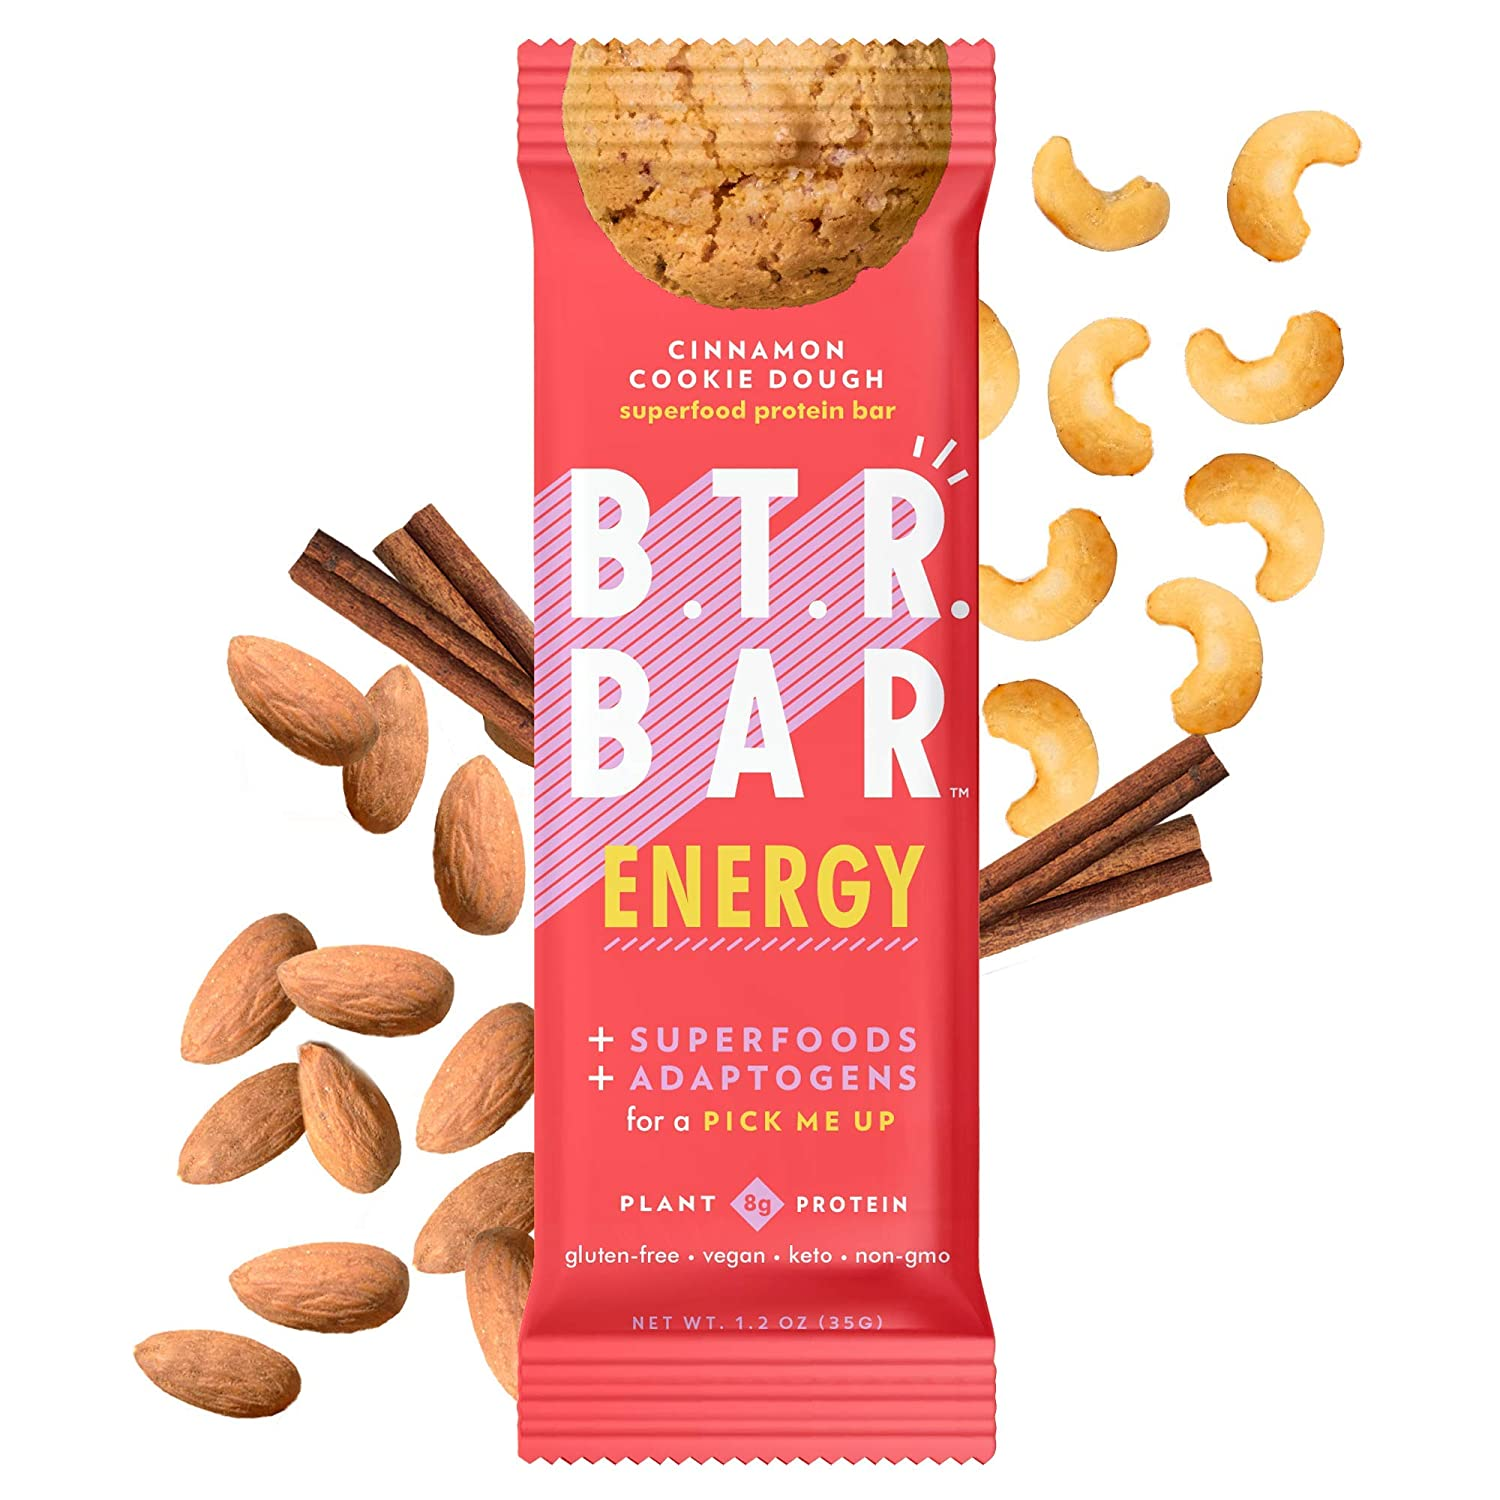 B.T.R. Bar Superfood Keto Protein Bars, Plant Based Vegan Protein, Low Carb Food, Low Calorie, Gluten Free, No Sugar Alcohols, Boosted with Superfoods & Adaptogens (12 Pack) (Cinnamon Cookie Dough ENERGY)